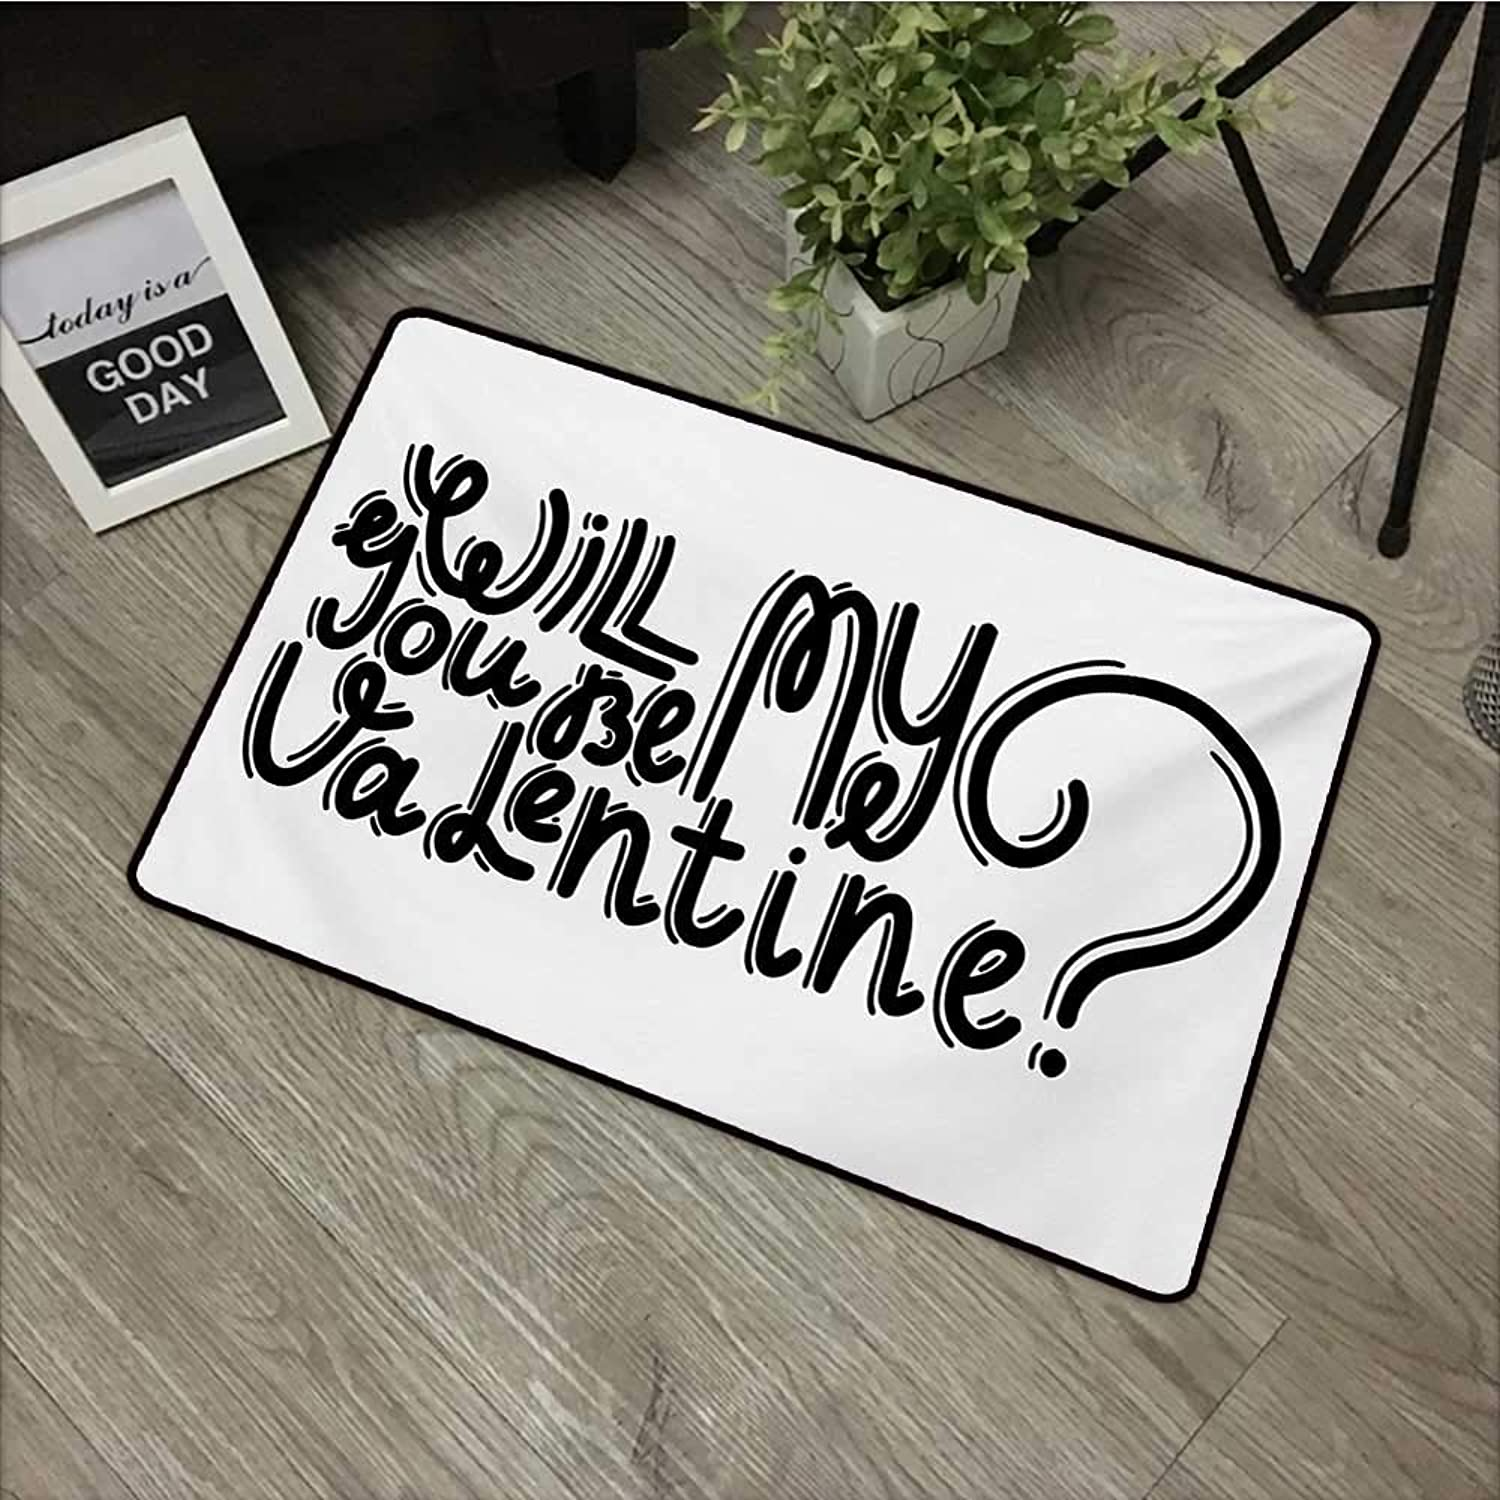 Bedroom Door mat W31 x L47 INCH Quote,Be My Valentine Theme Romantic Message Monochrome Valentines Day Script Design,Black and White Easy to Clean, no Deformation, no Fading Non-Slip Door Mat Carpet